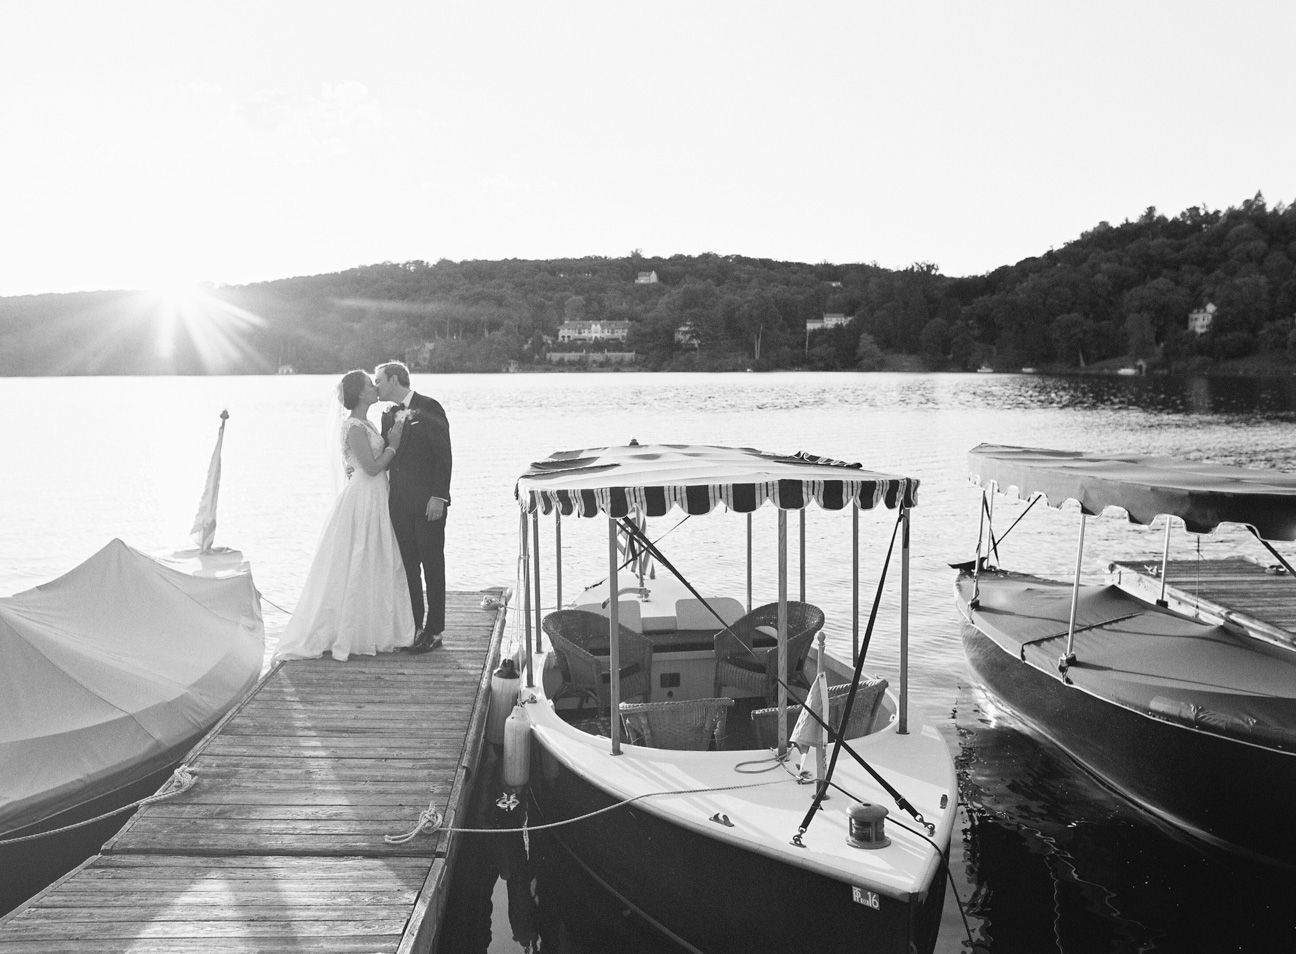 Wedding couple by a lake kissing